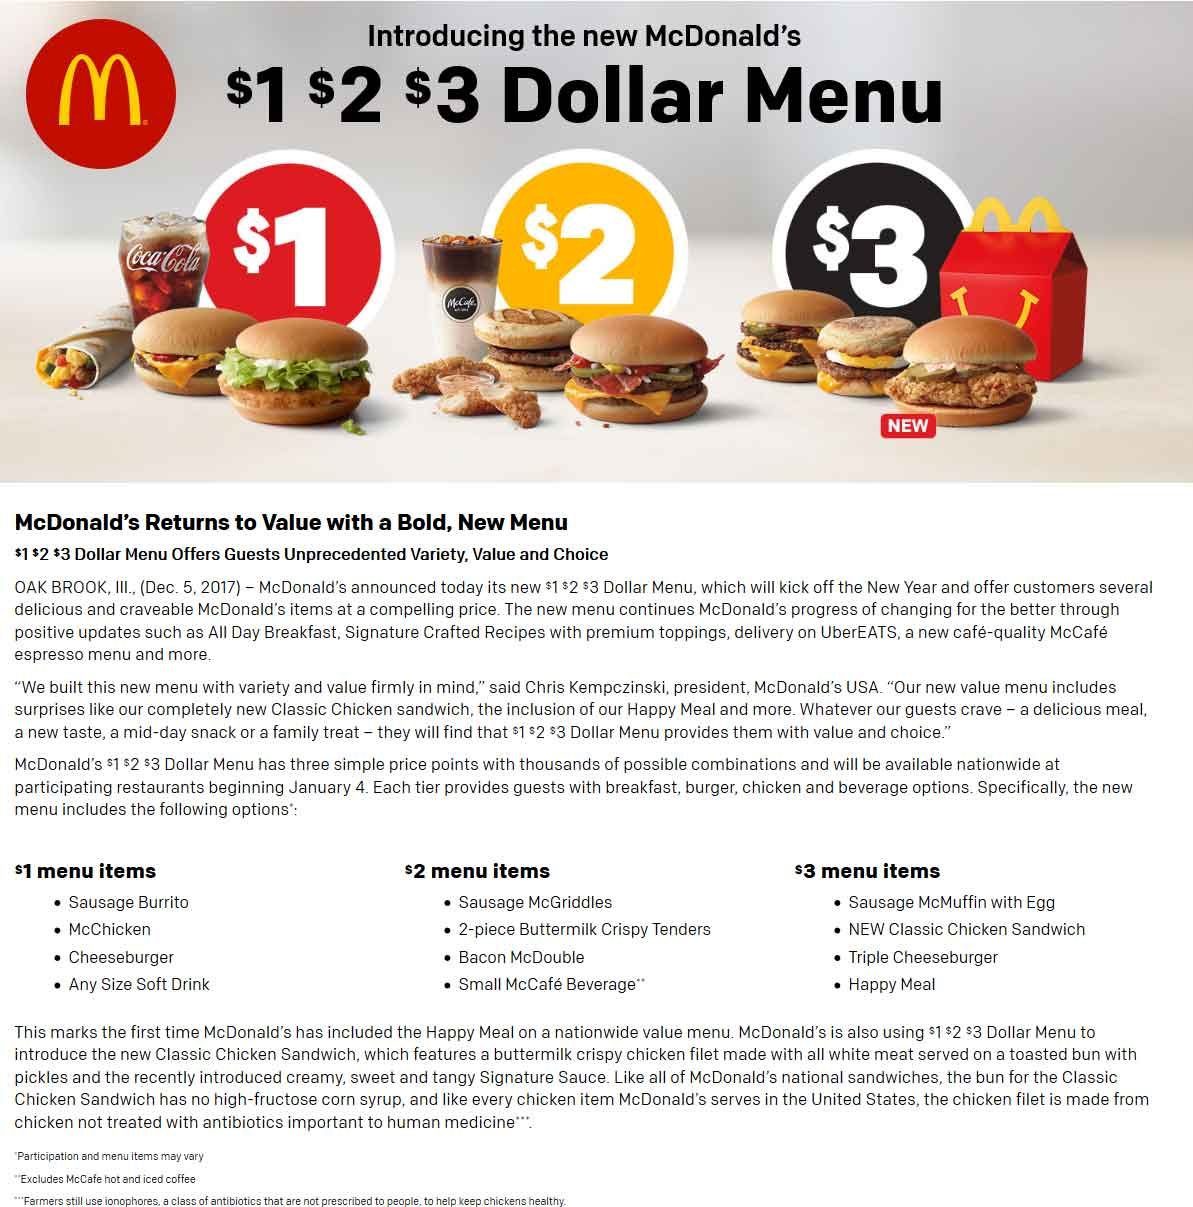 McDonalds Coupon October 2018 Happy meal added to McDonalds updated dollar menu